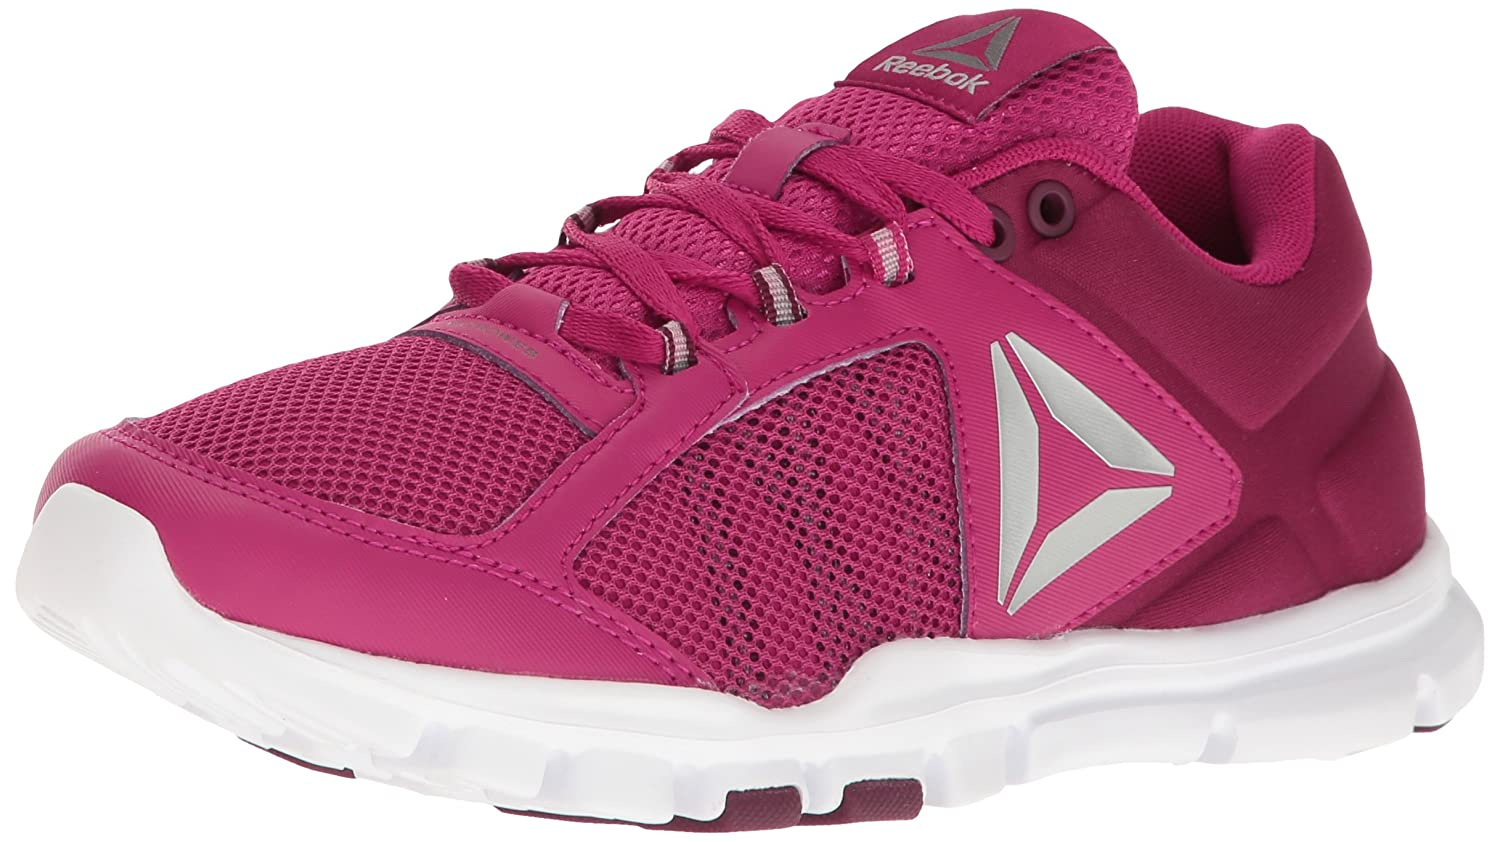 Reebok Women's Yourflex Trainette 9.0 MT Cross-Trainer Shoe B01I0E5AMU 7.5 B(M) US|Manic Cherry/Rustic Wine/White/Metallic Silver/Grey